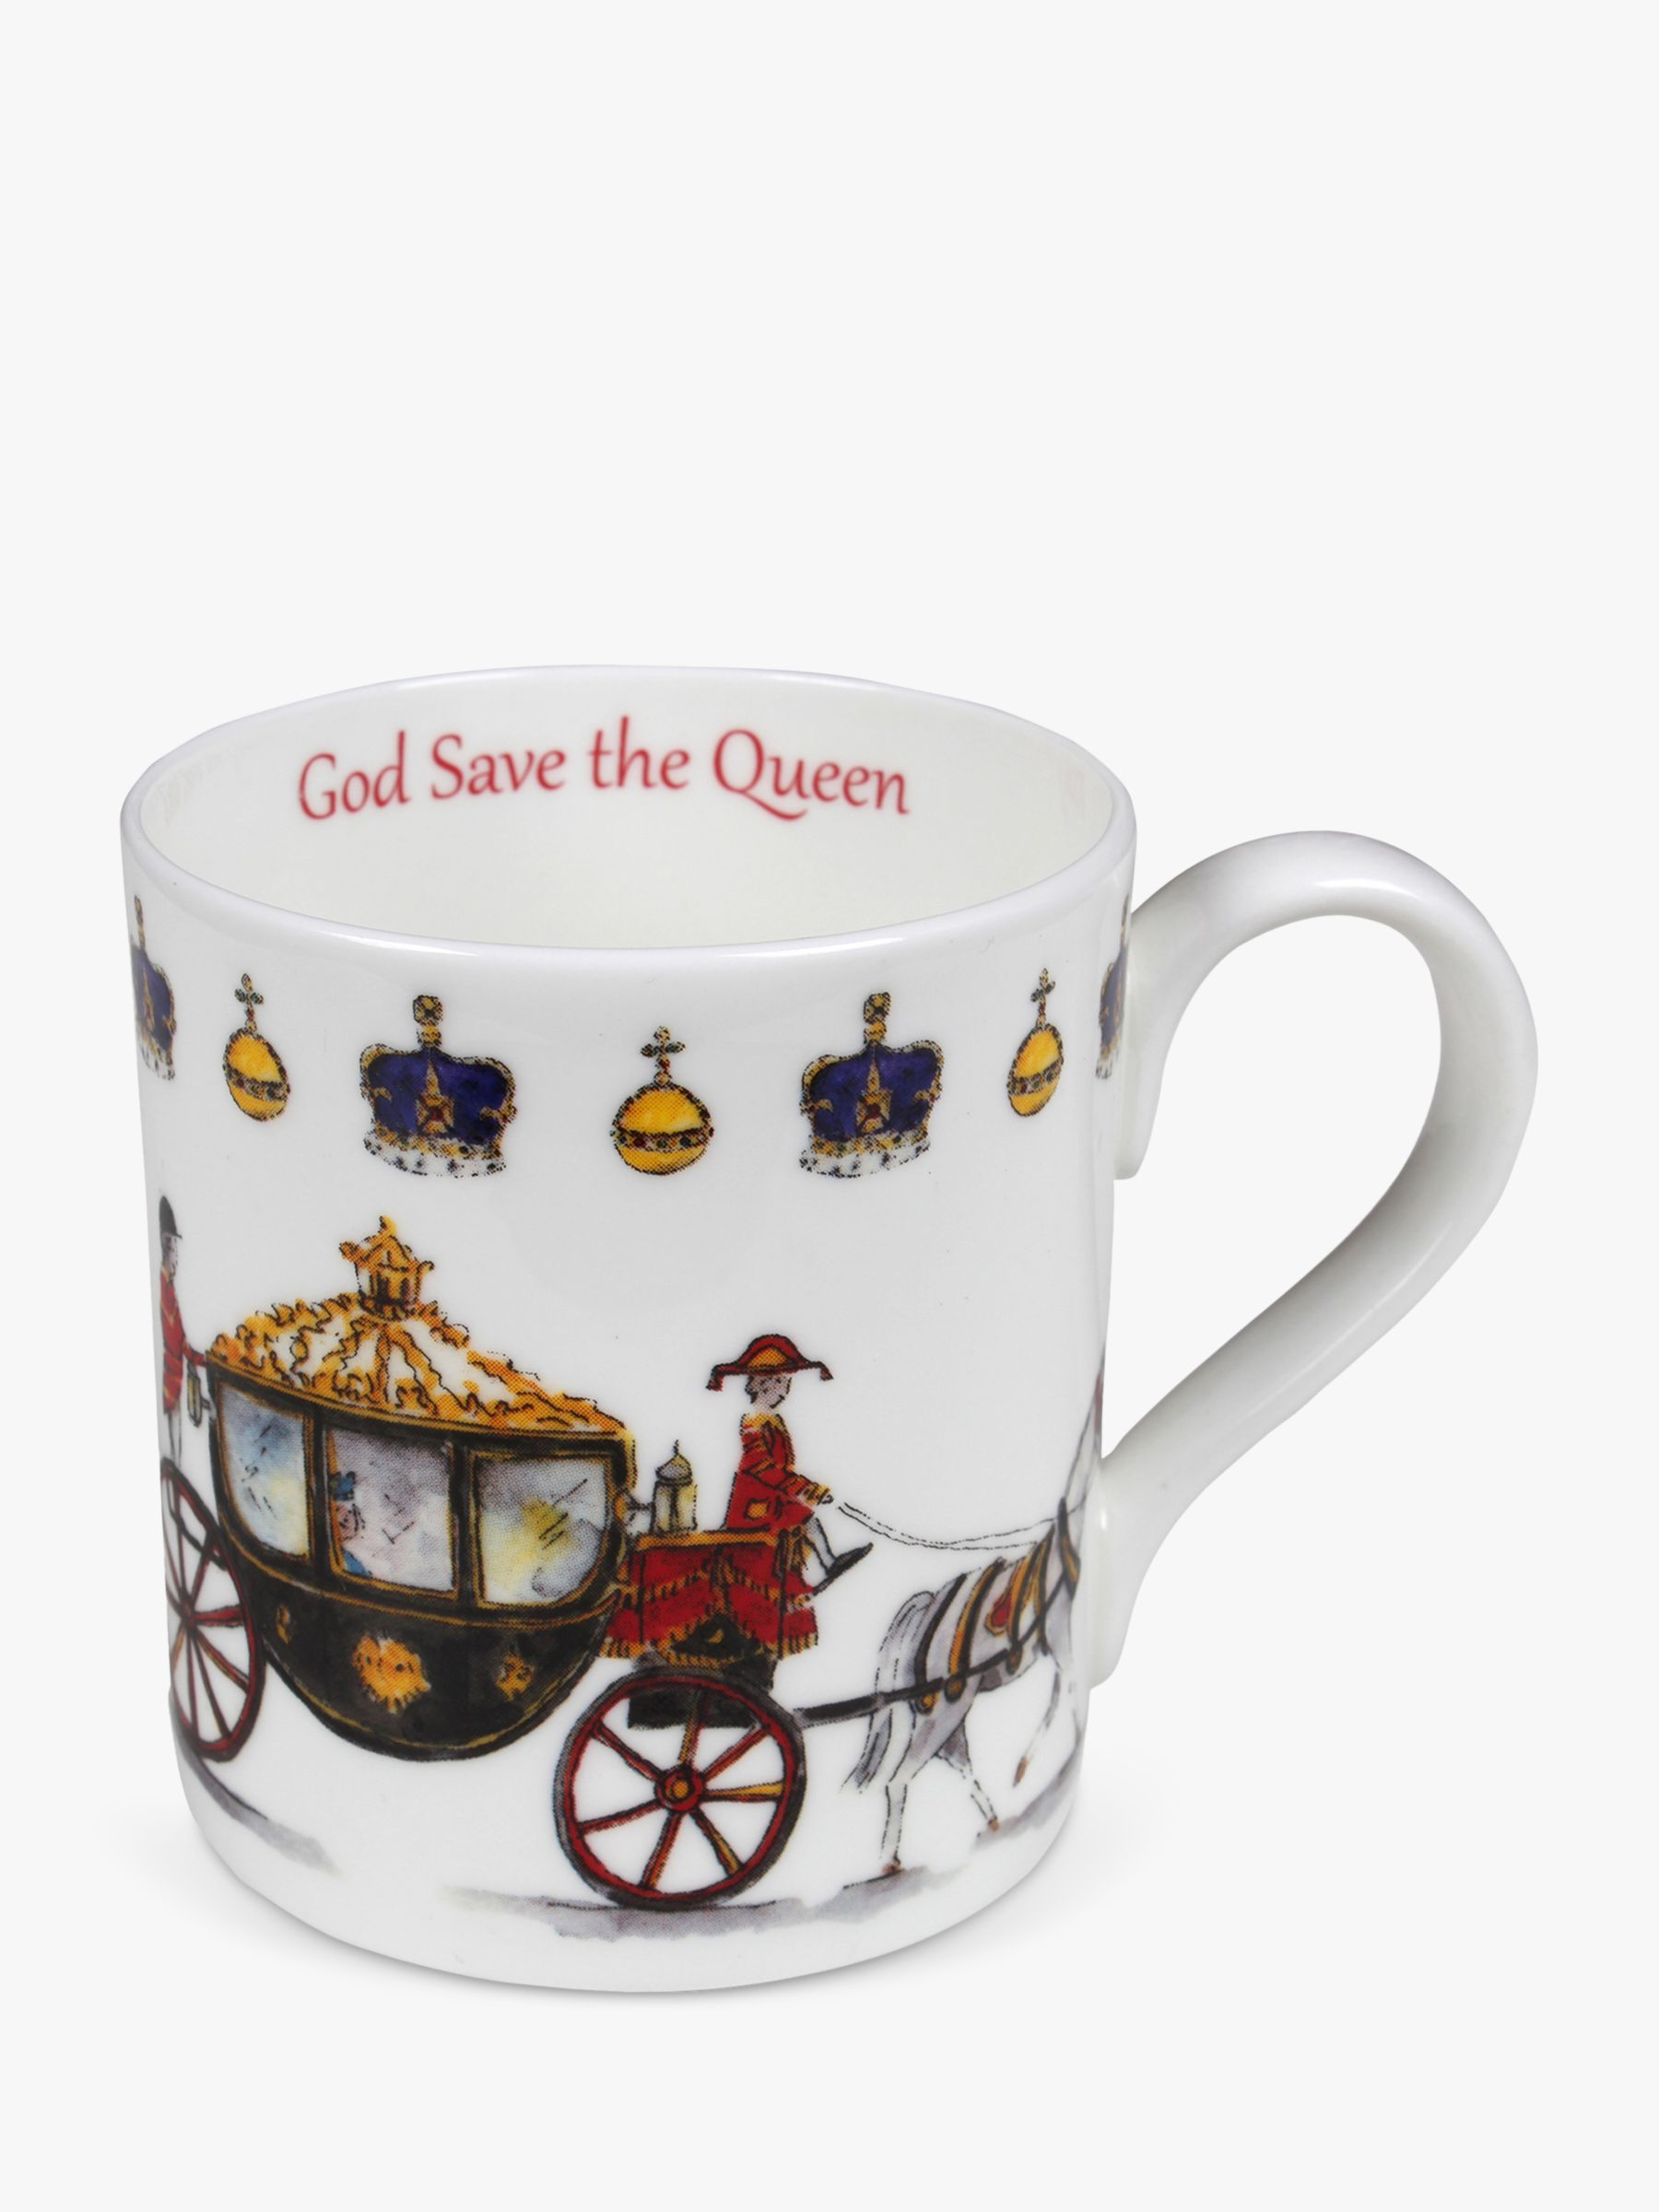 Milly Green Milly Green God Save The Queen China Mug